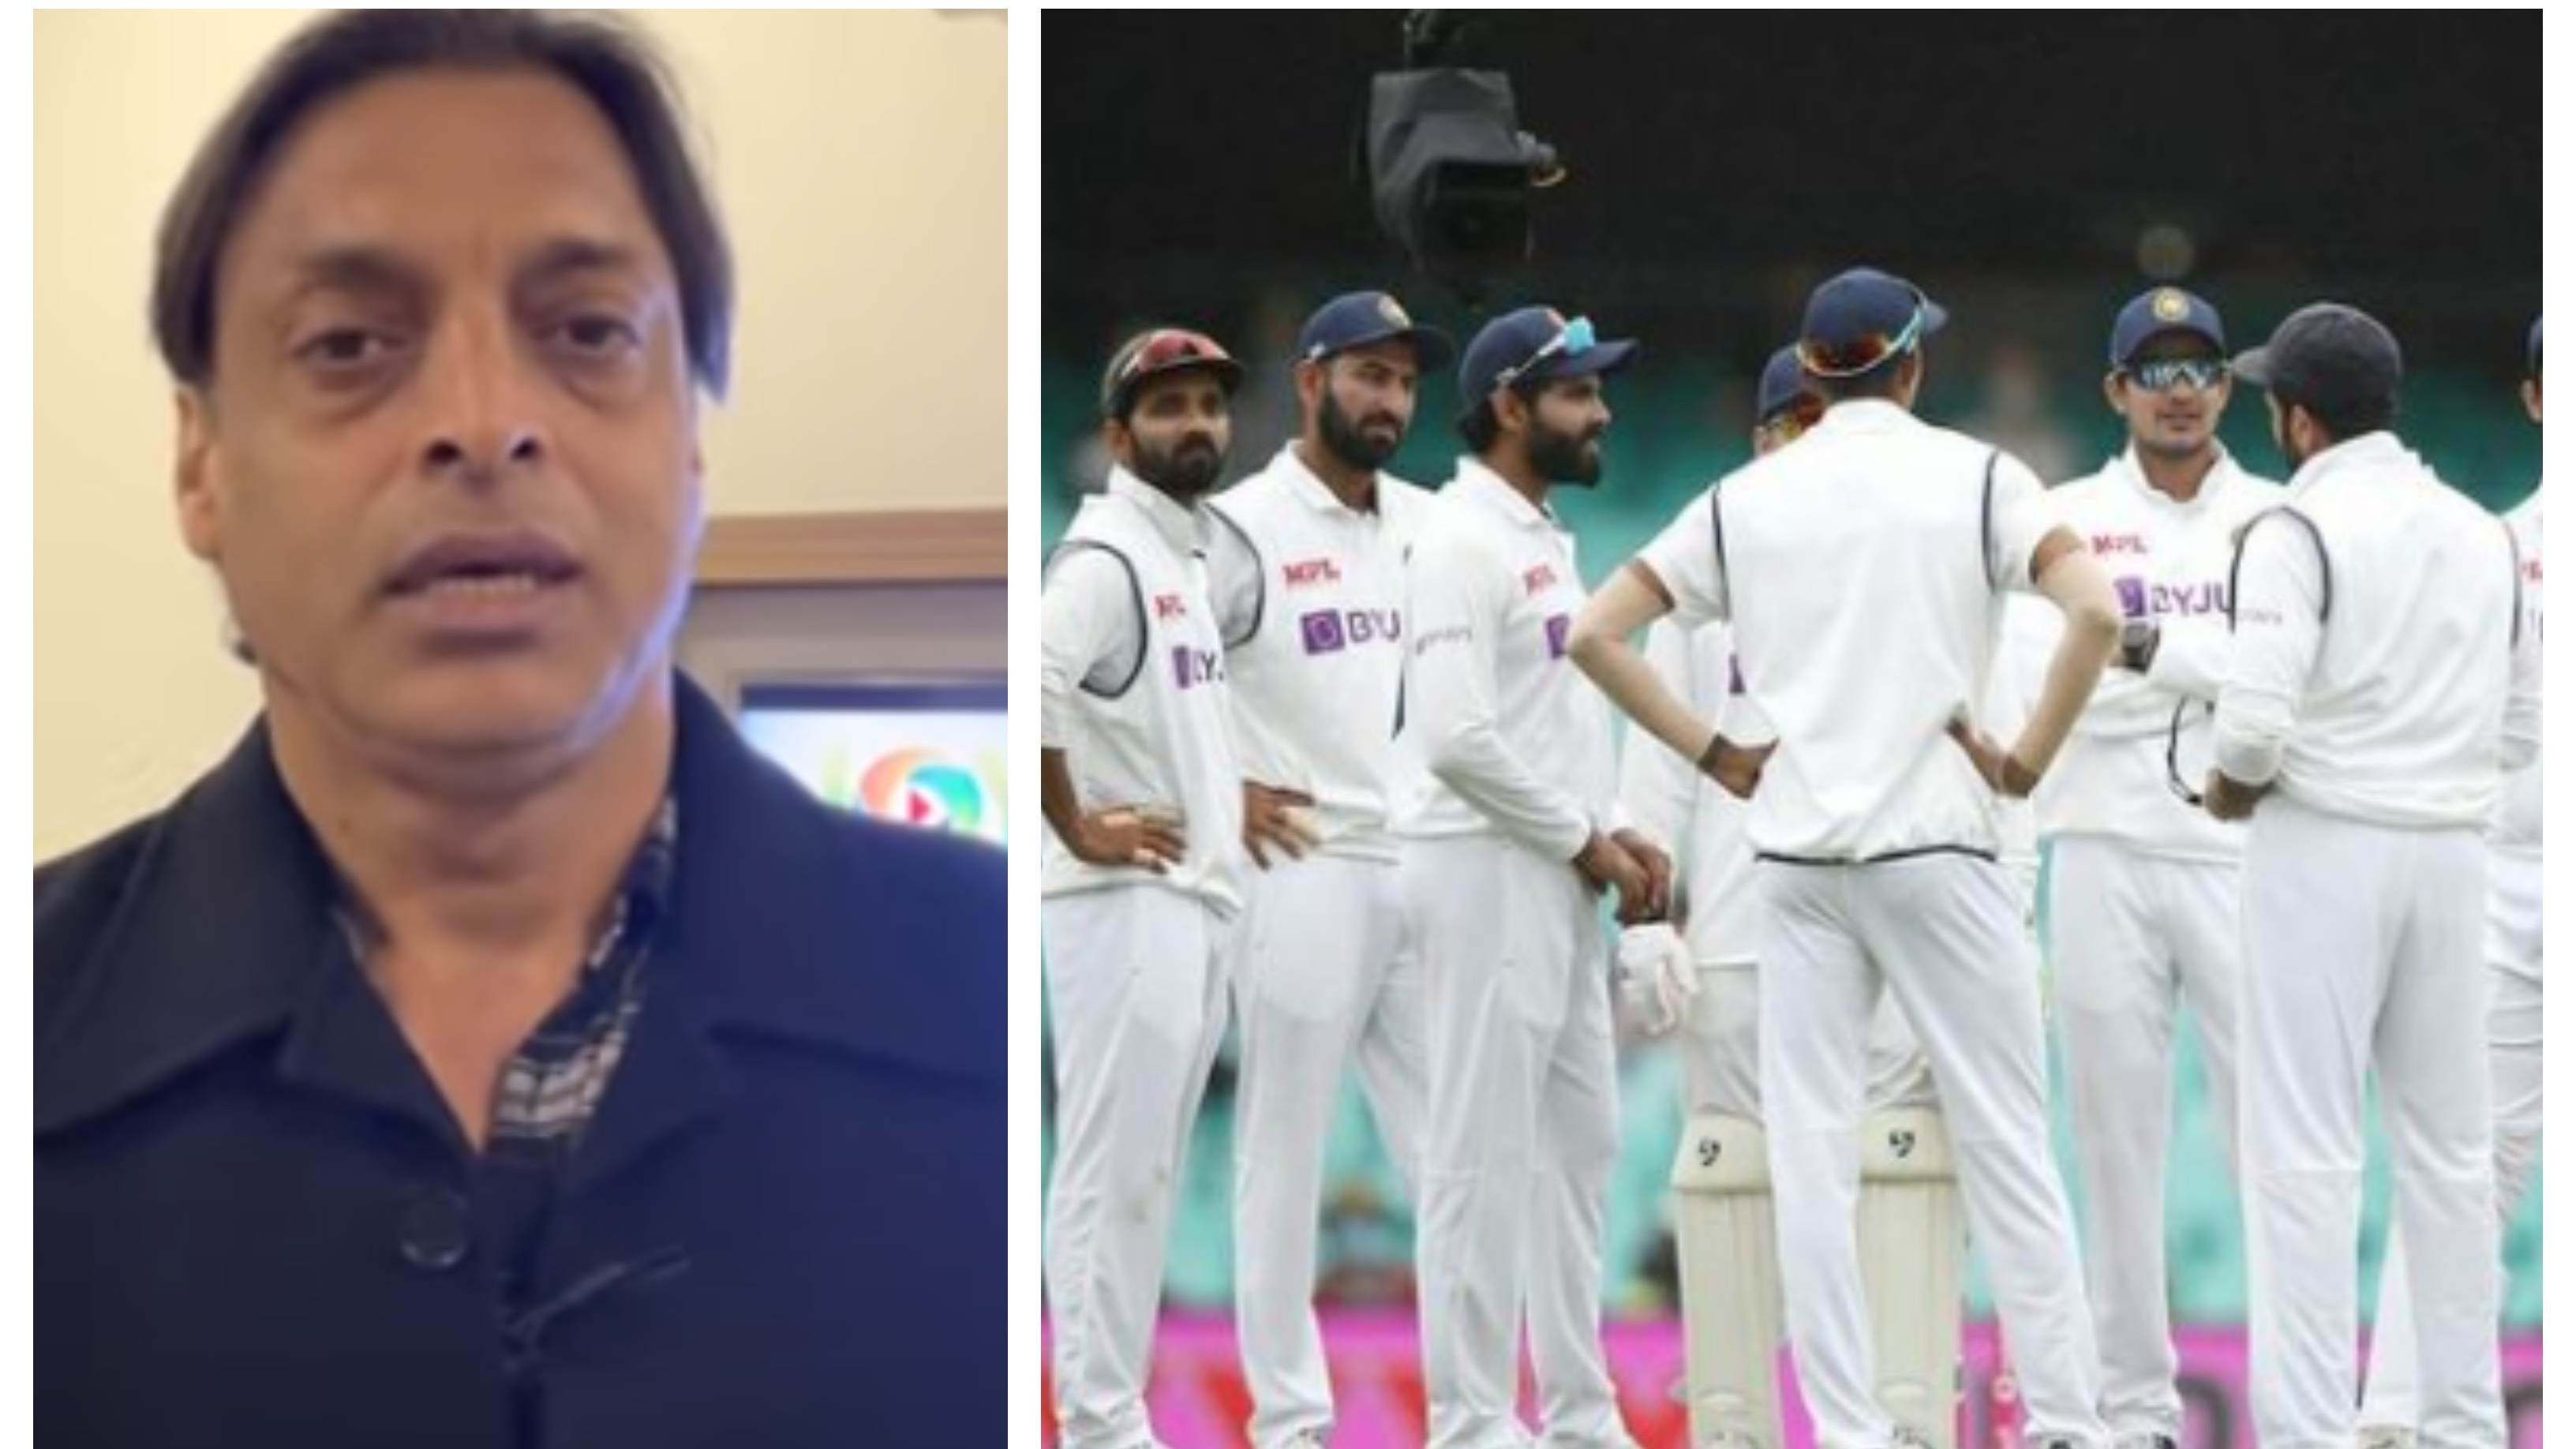 AUS v IND 2020-21: 'Win in Brisbane will give Team India their greatest Test series victory ever', says Shoaib Akhtar